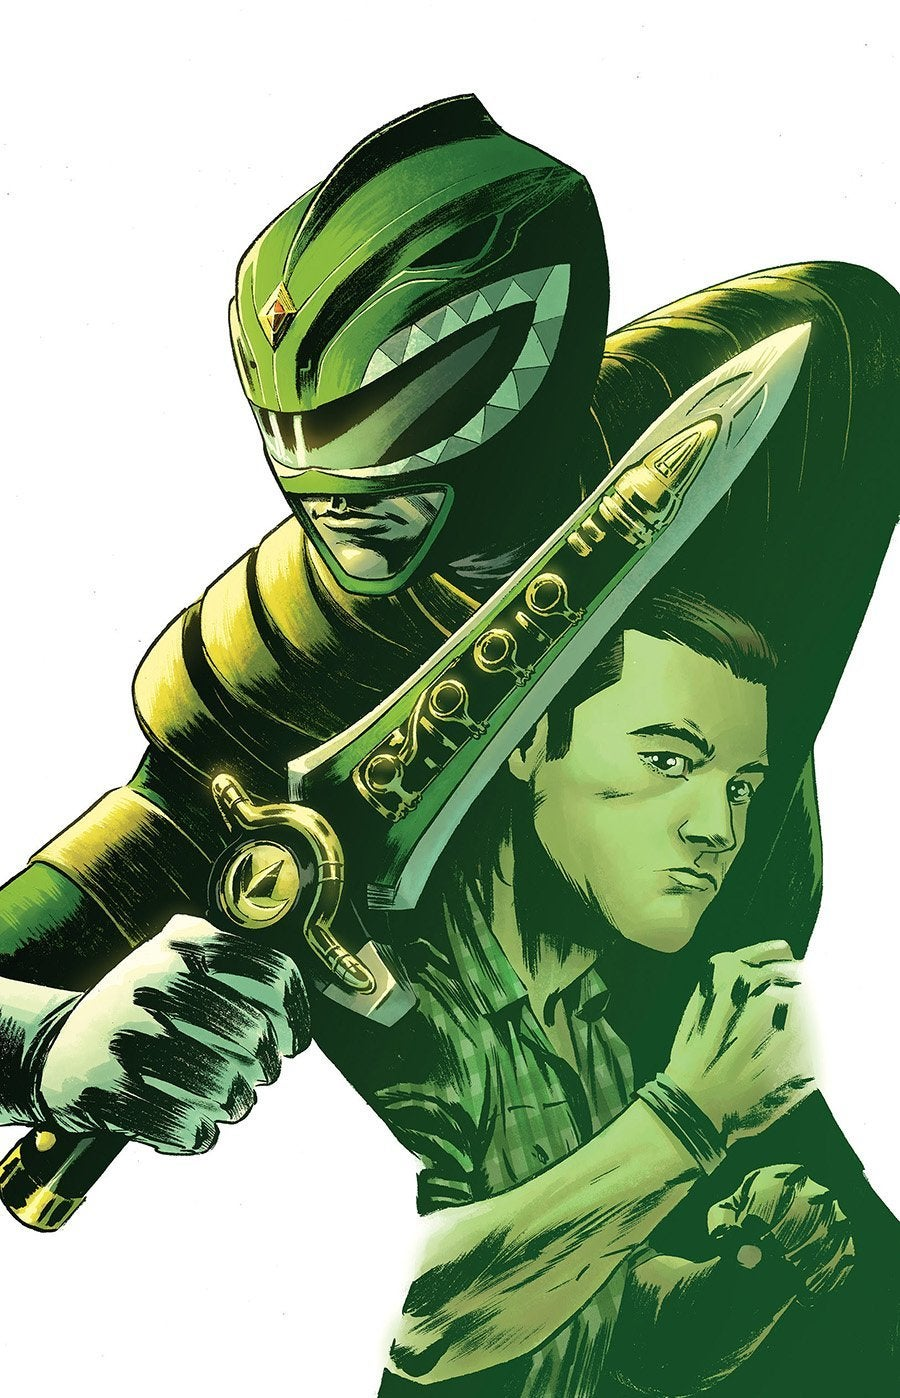 Power-Rangers-Contest-ECCC-2018-Green-Ranger-Variant